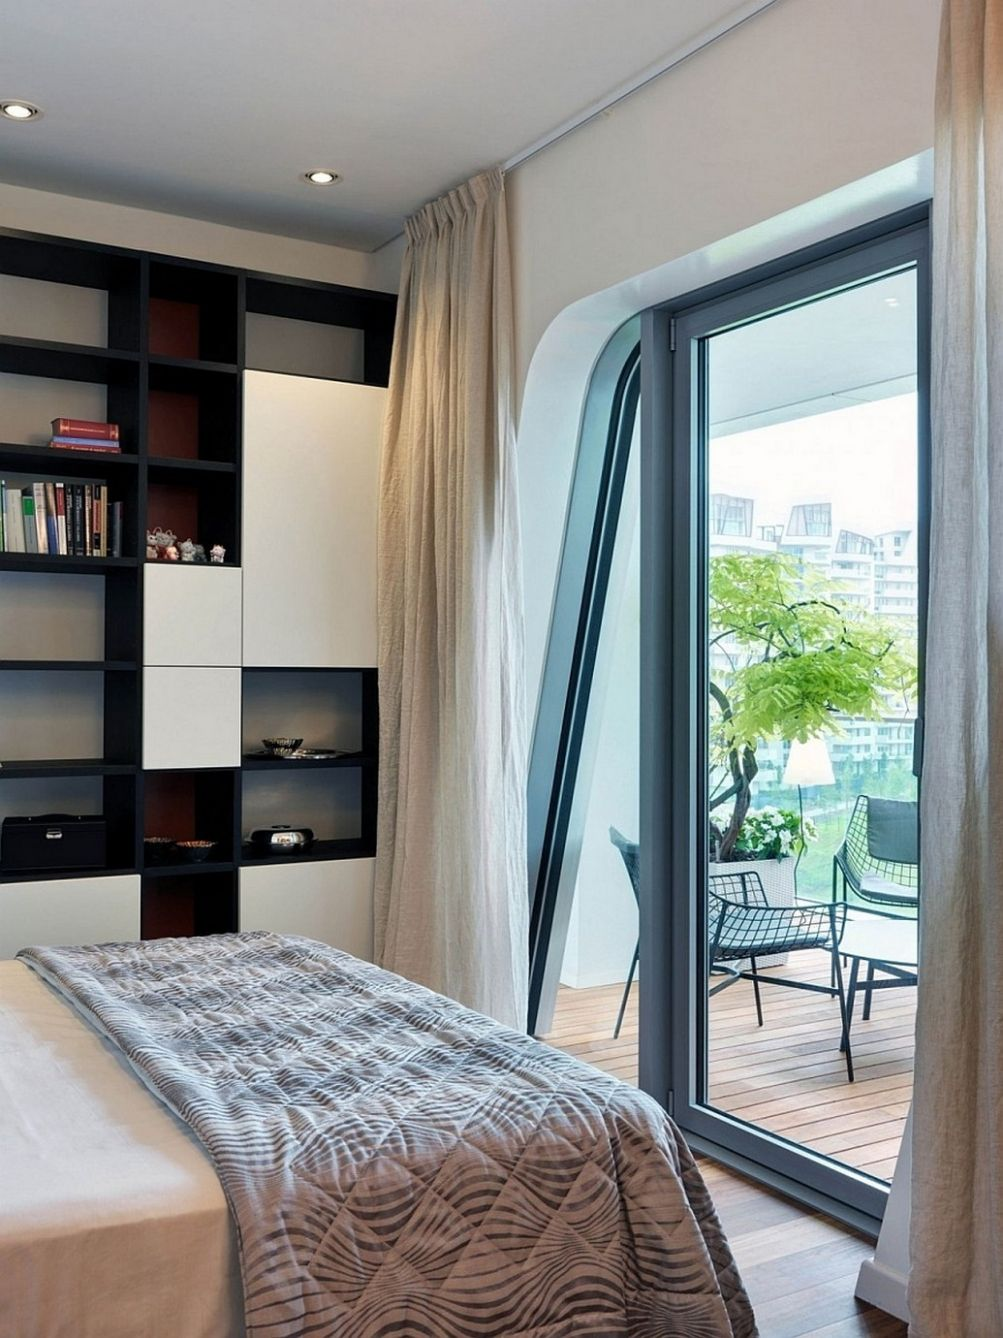 Inspired Accessories Bedroom With Balcony Design On A Budget ..